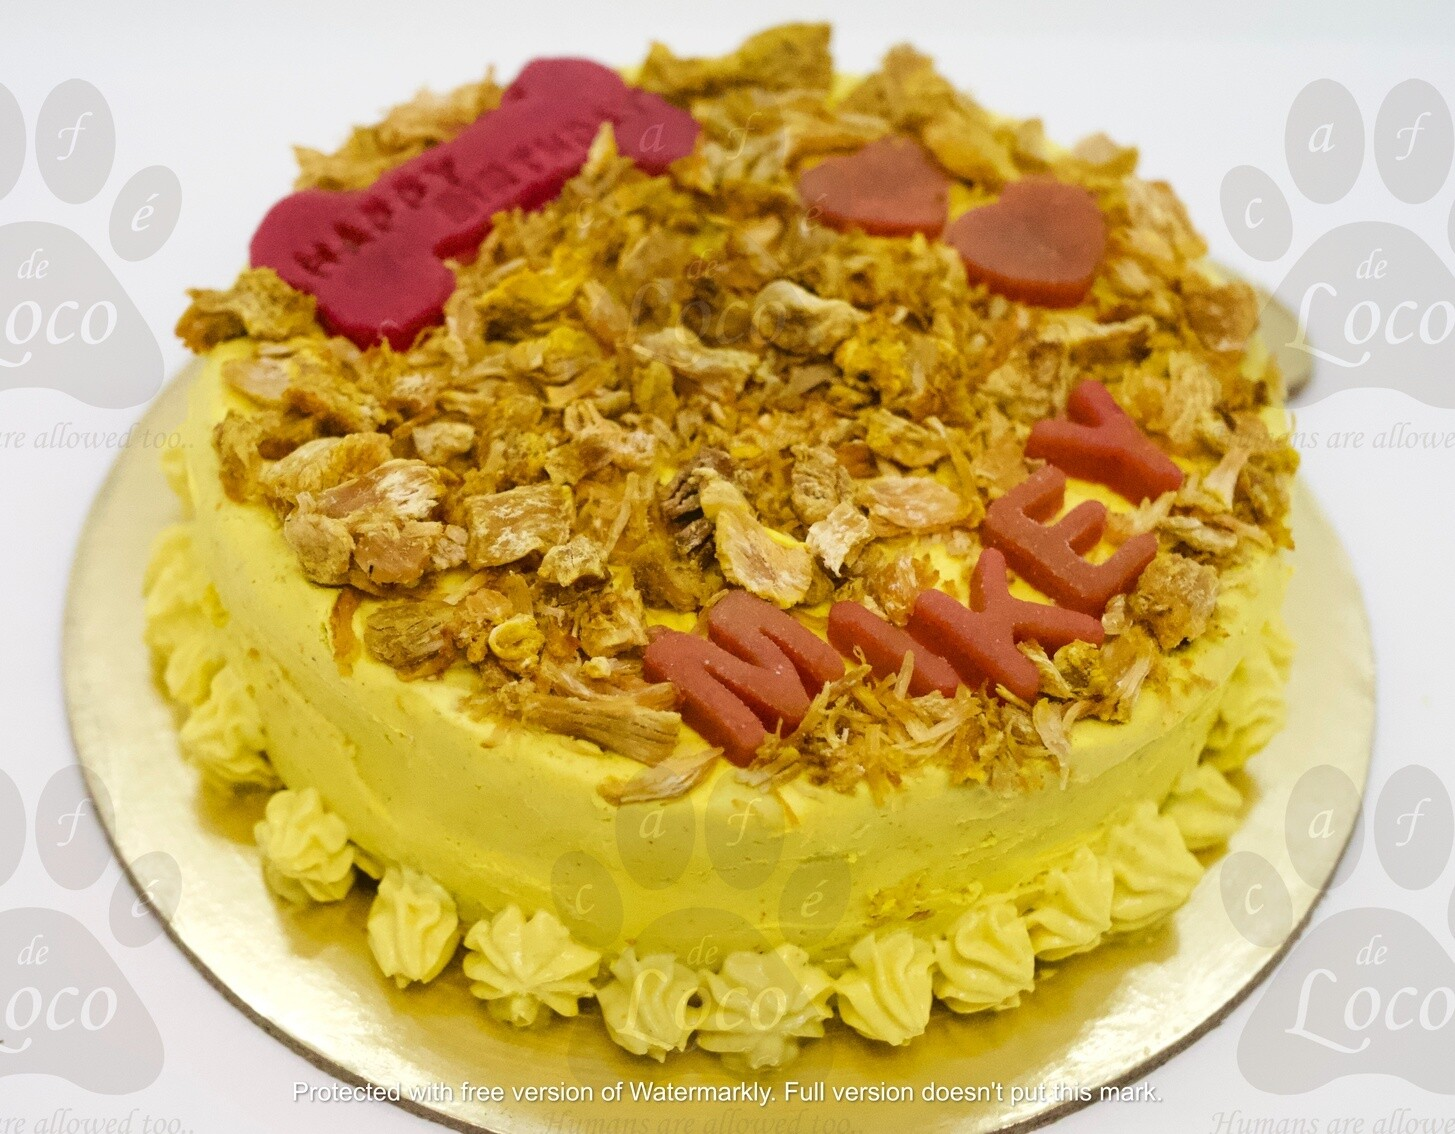 Icing cake with top decoration